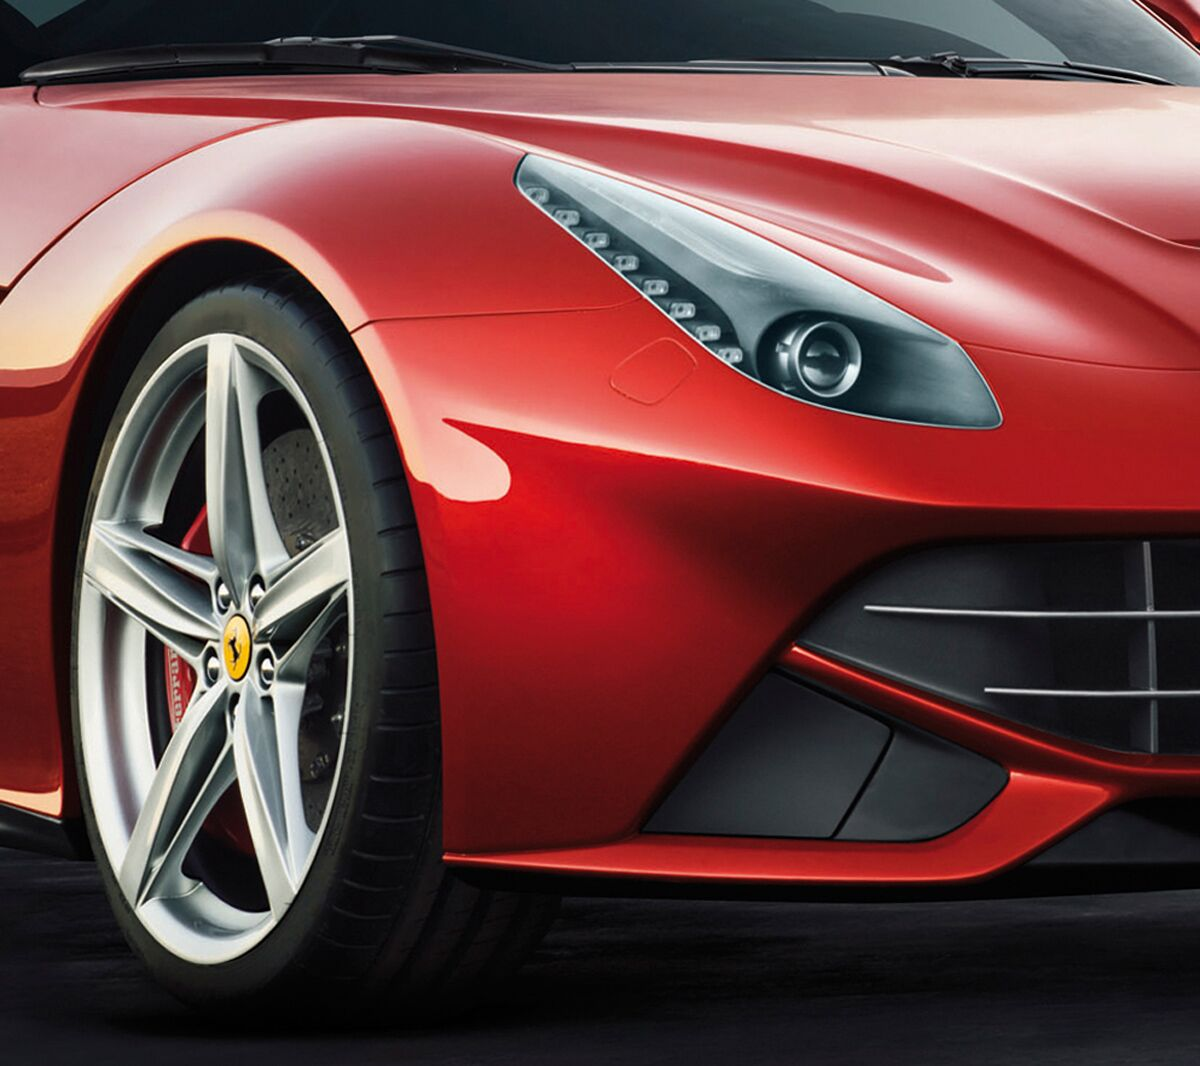 In The Works: Ferrari F12 Speciale Means Less Weight And